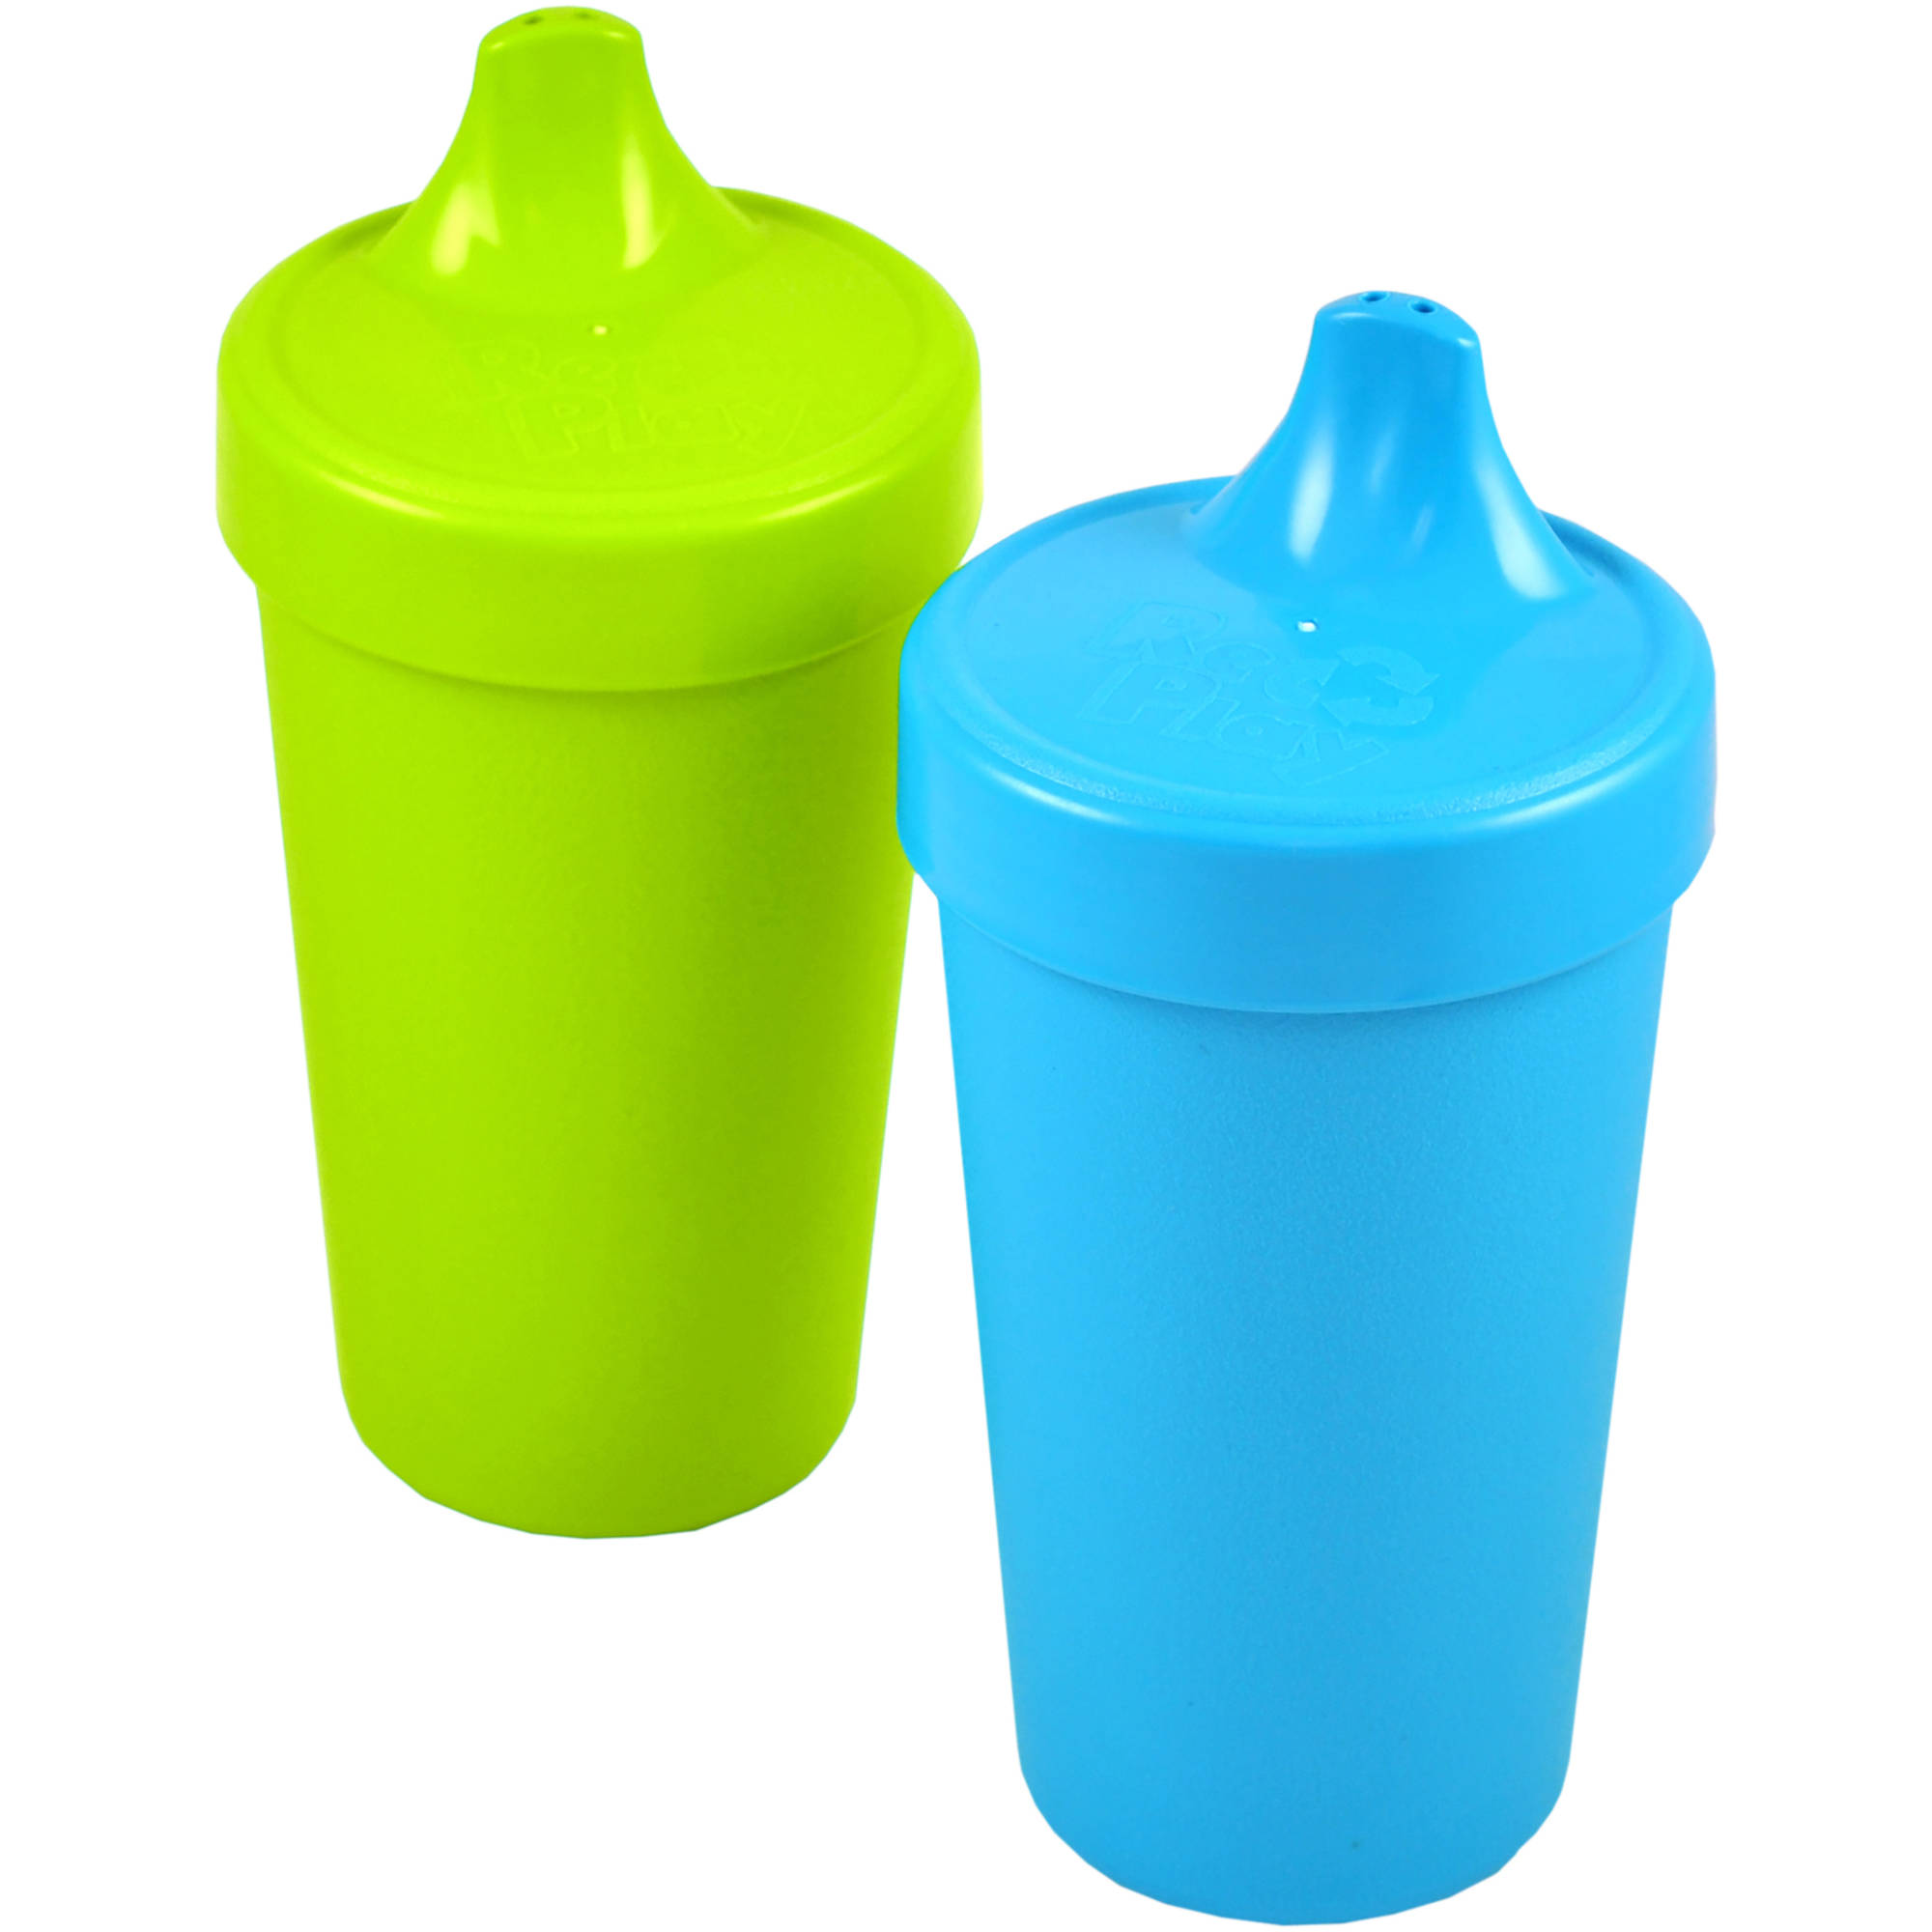 Re-Play 2-Pack Spill Proof Cups, BPA-Free by Re-Play